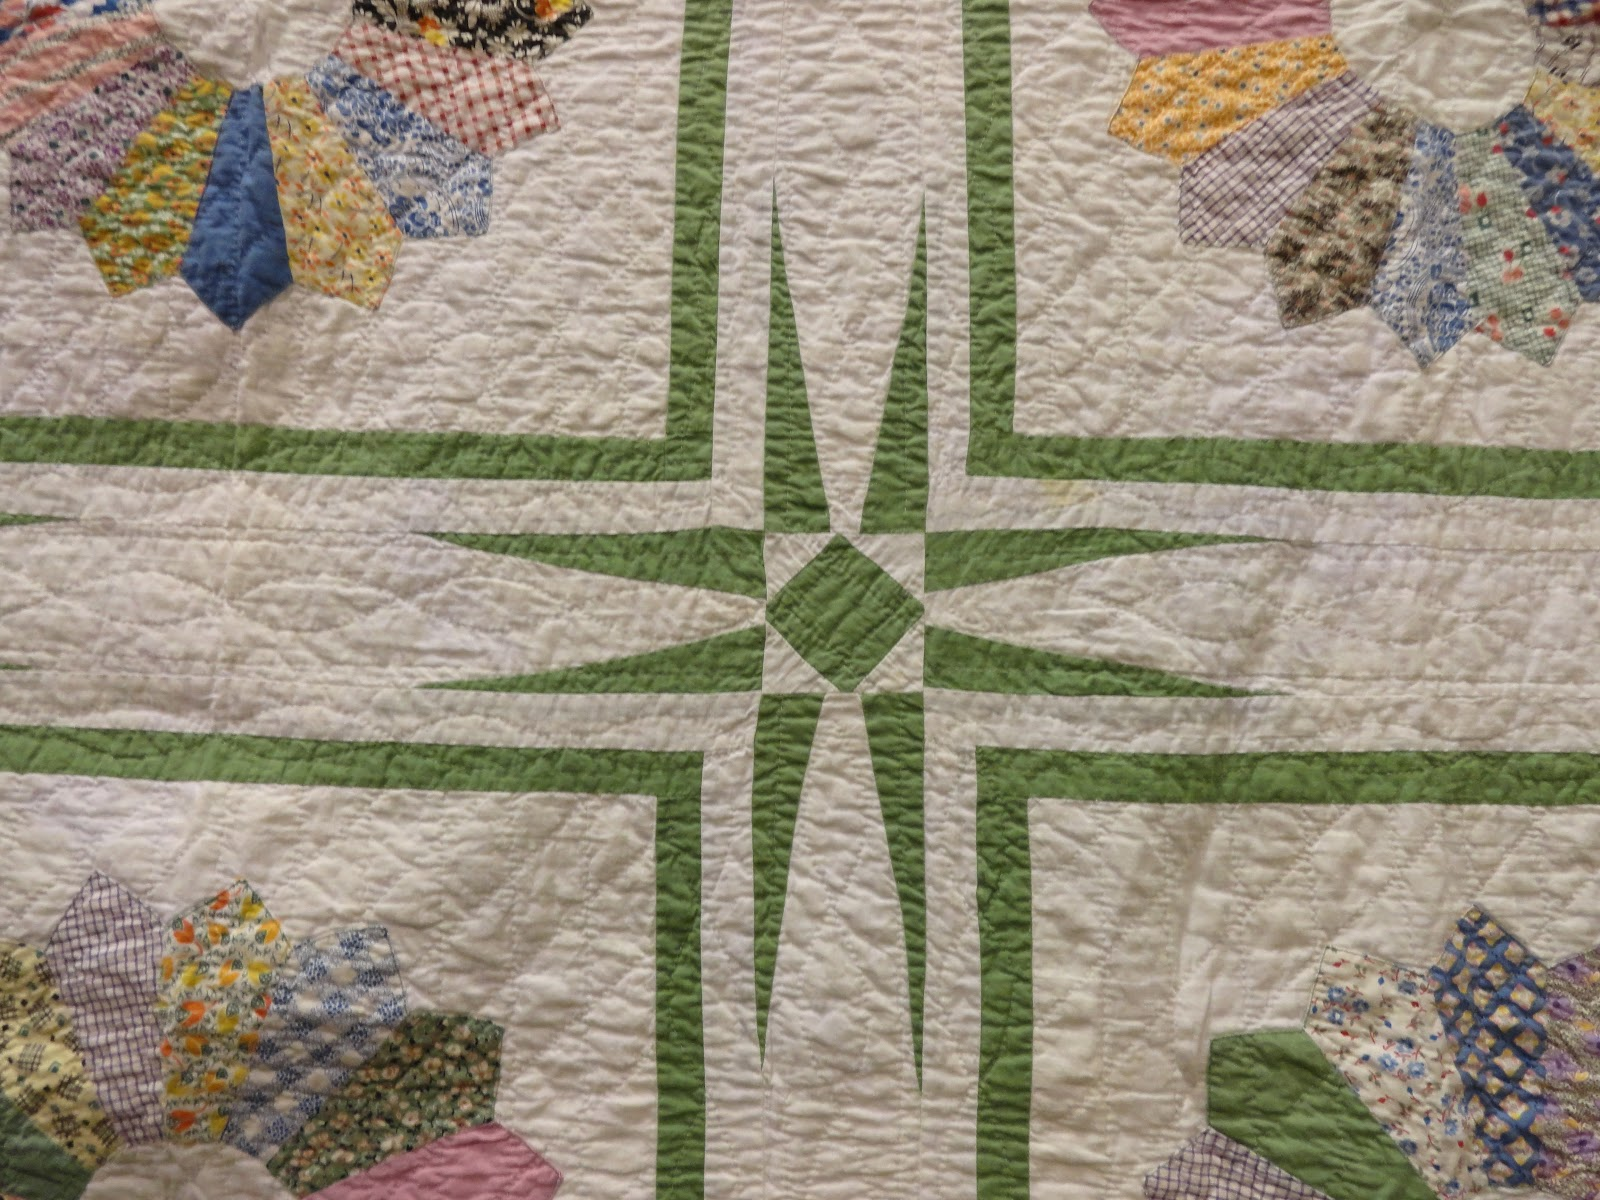 The Civil War Quilter Kalona Quilt Show Part 2